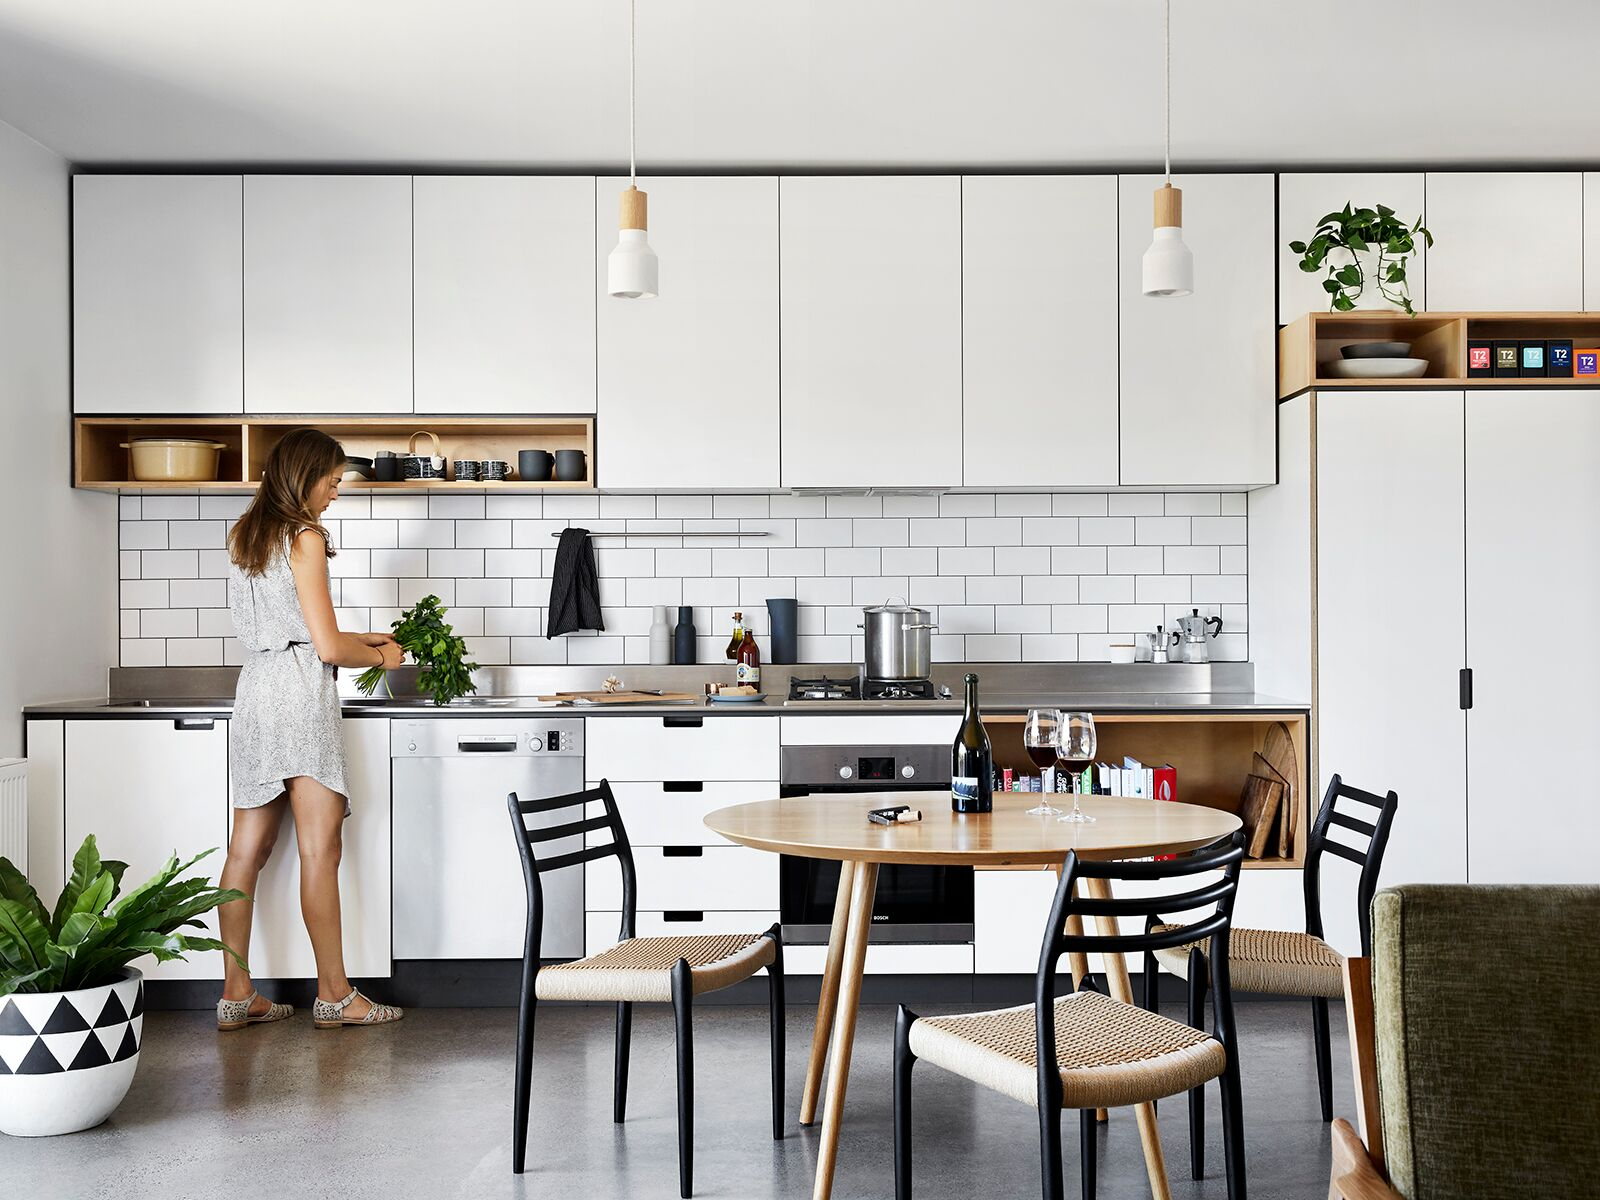 1 North Street by HIP V. HYPE - Liam Wallis - Australia Design & Architecture - Sustainable - Photographed by Tess Kelly - Image 2